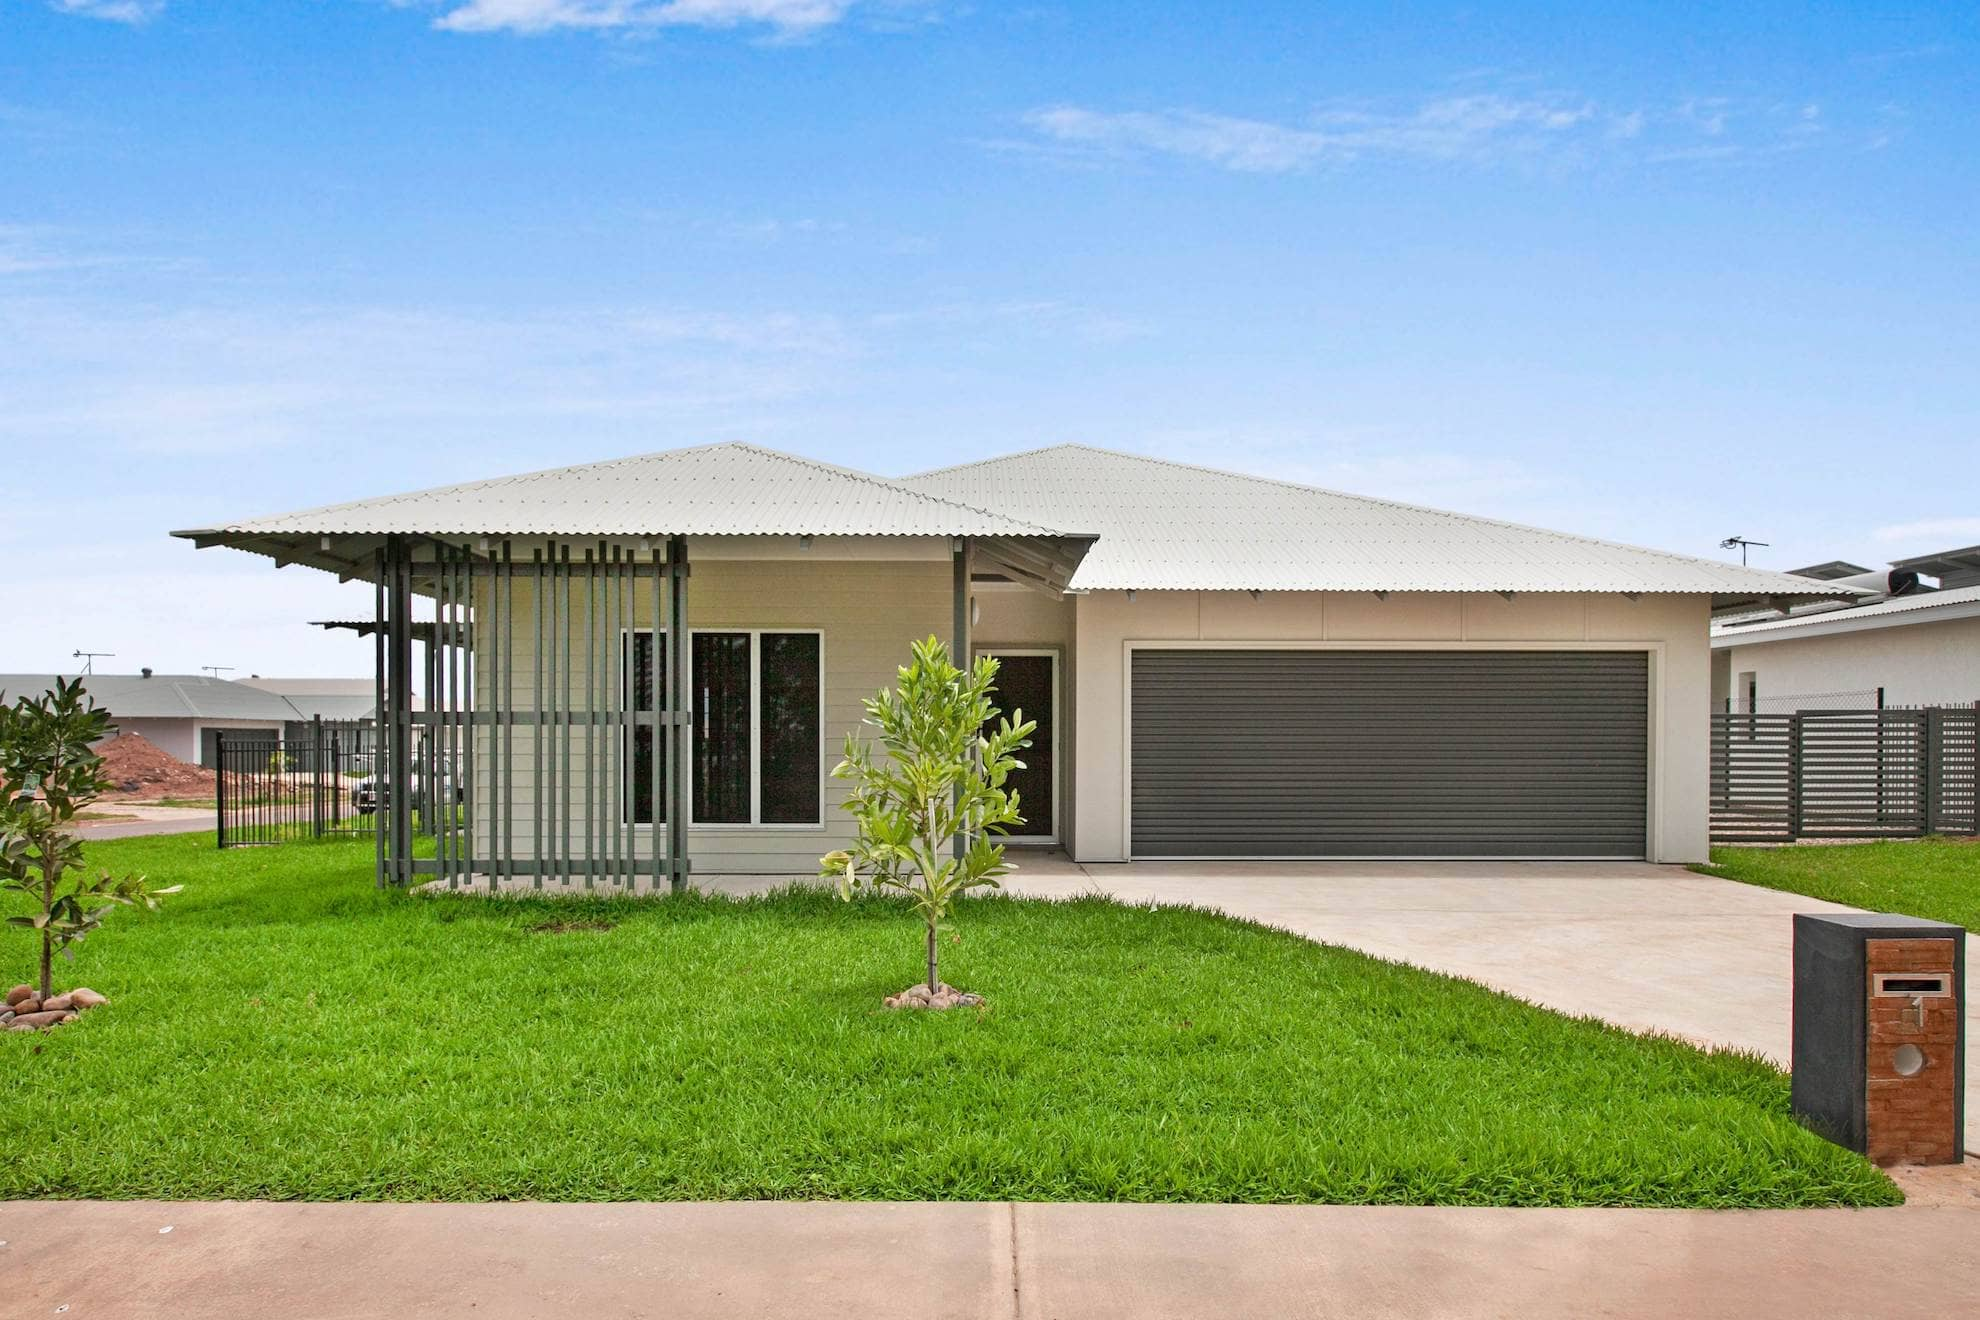 Defence Housing project by mdesign, a building design practice that operates on the Sunshine Coast.